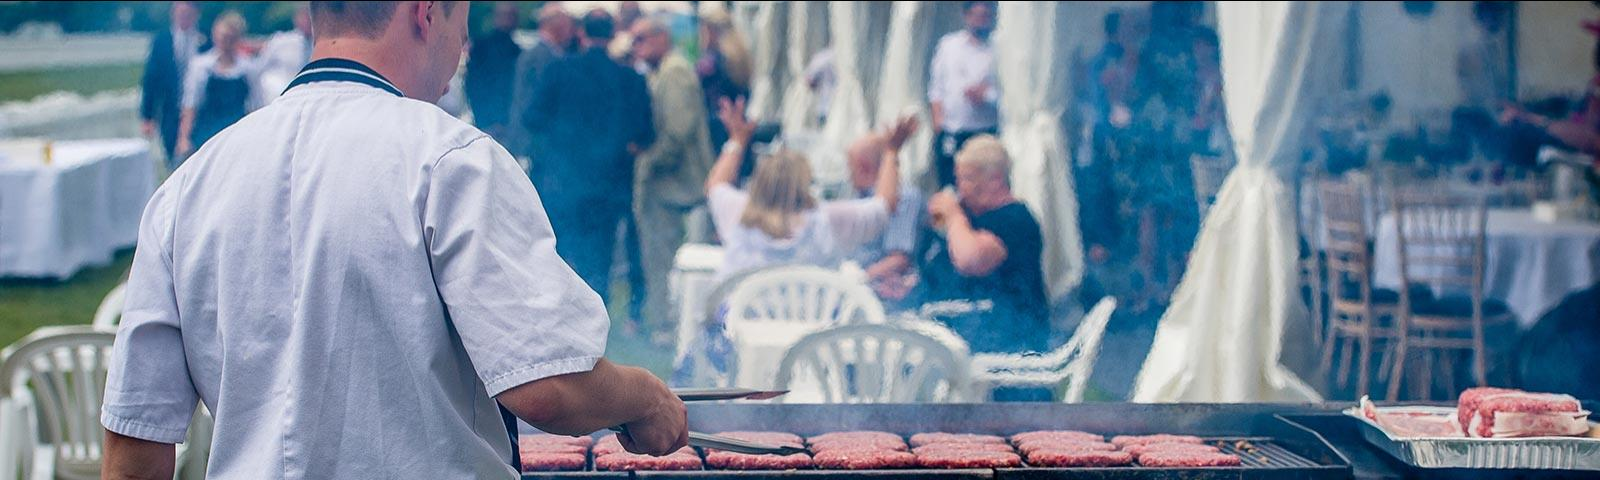 Chef preparing burgers on an outdoor grill at Windsor Racecourse.